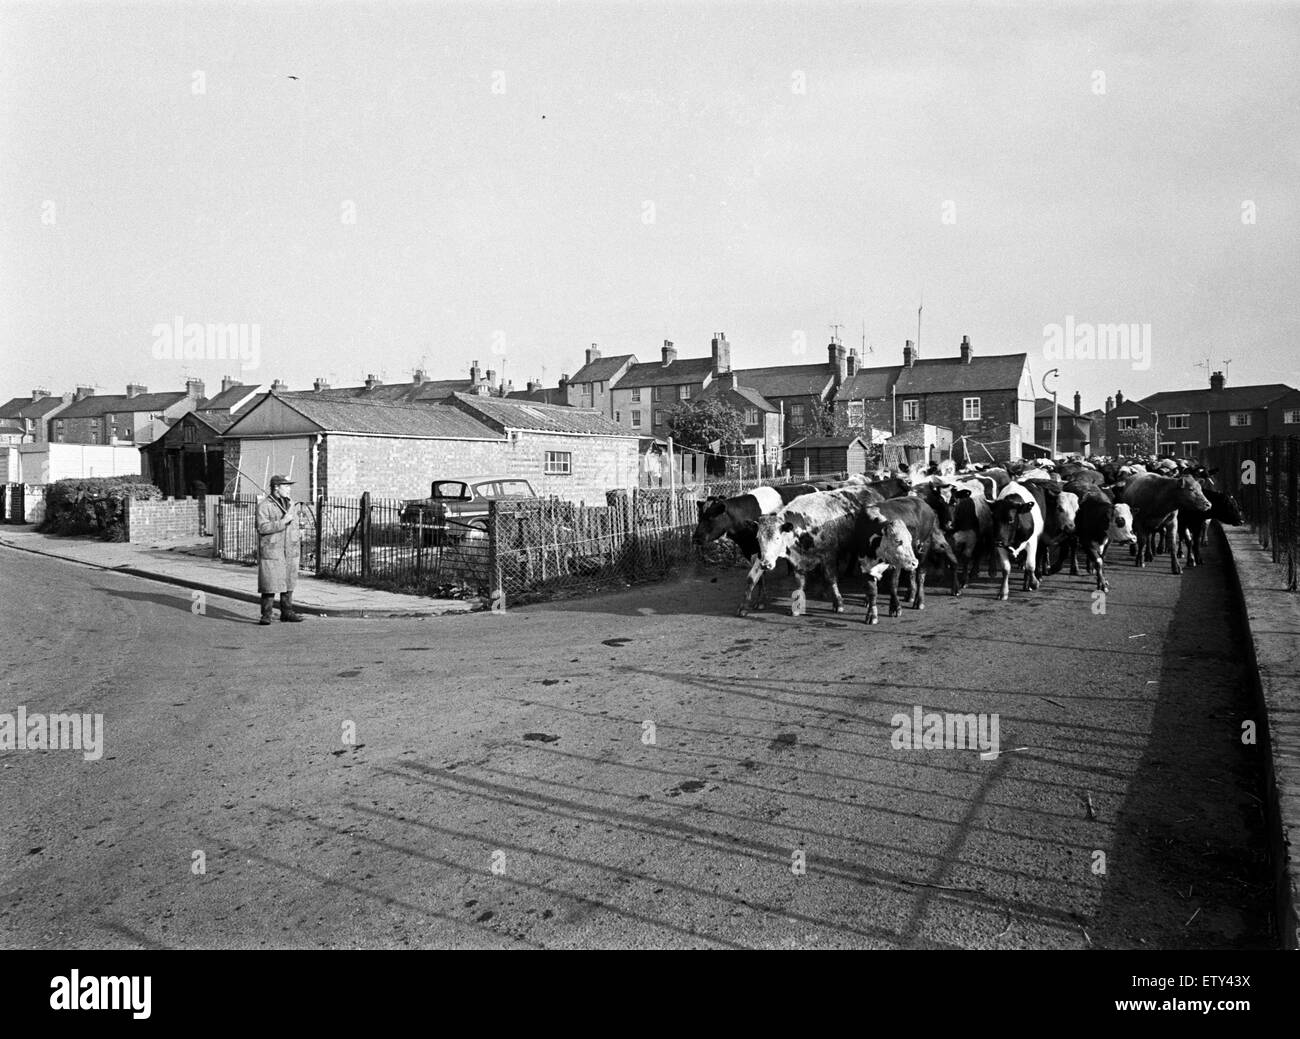 Cattle are driven to market in Banbury, Oxfordshire. 17th May 1968. - Stock Image